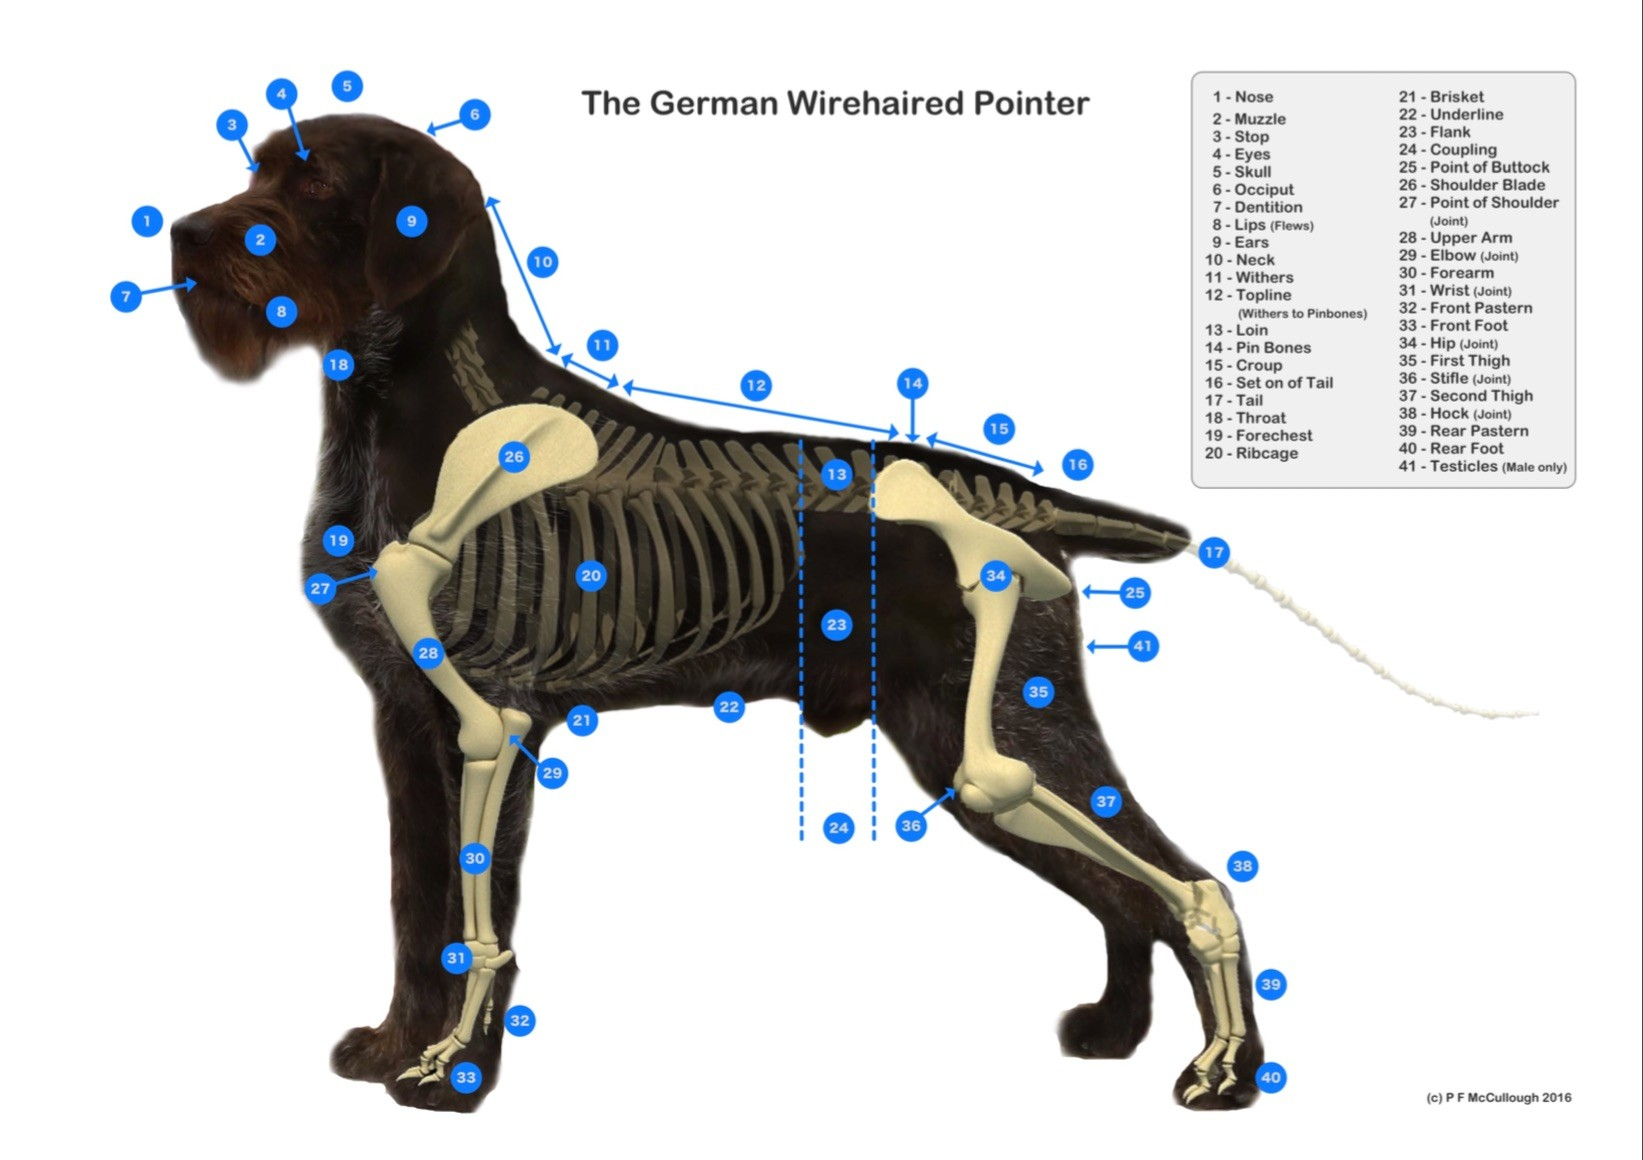 hight resolution of gwp diagram claddagh german wirehaired pointersdog withers diagram 18